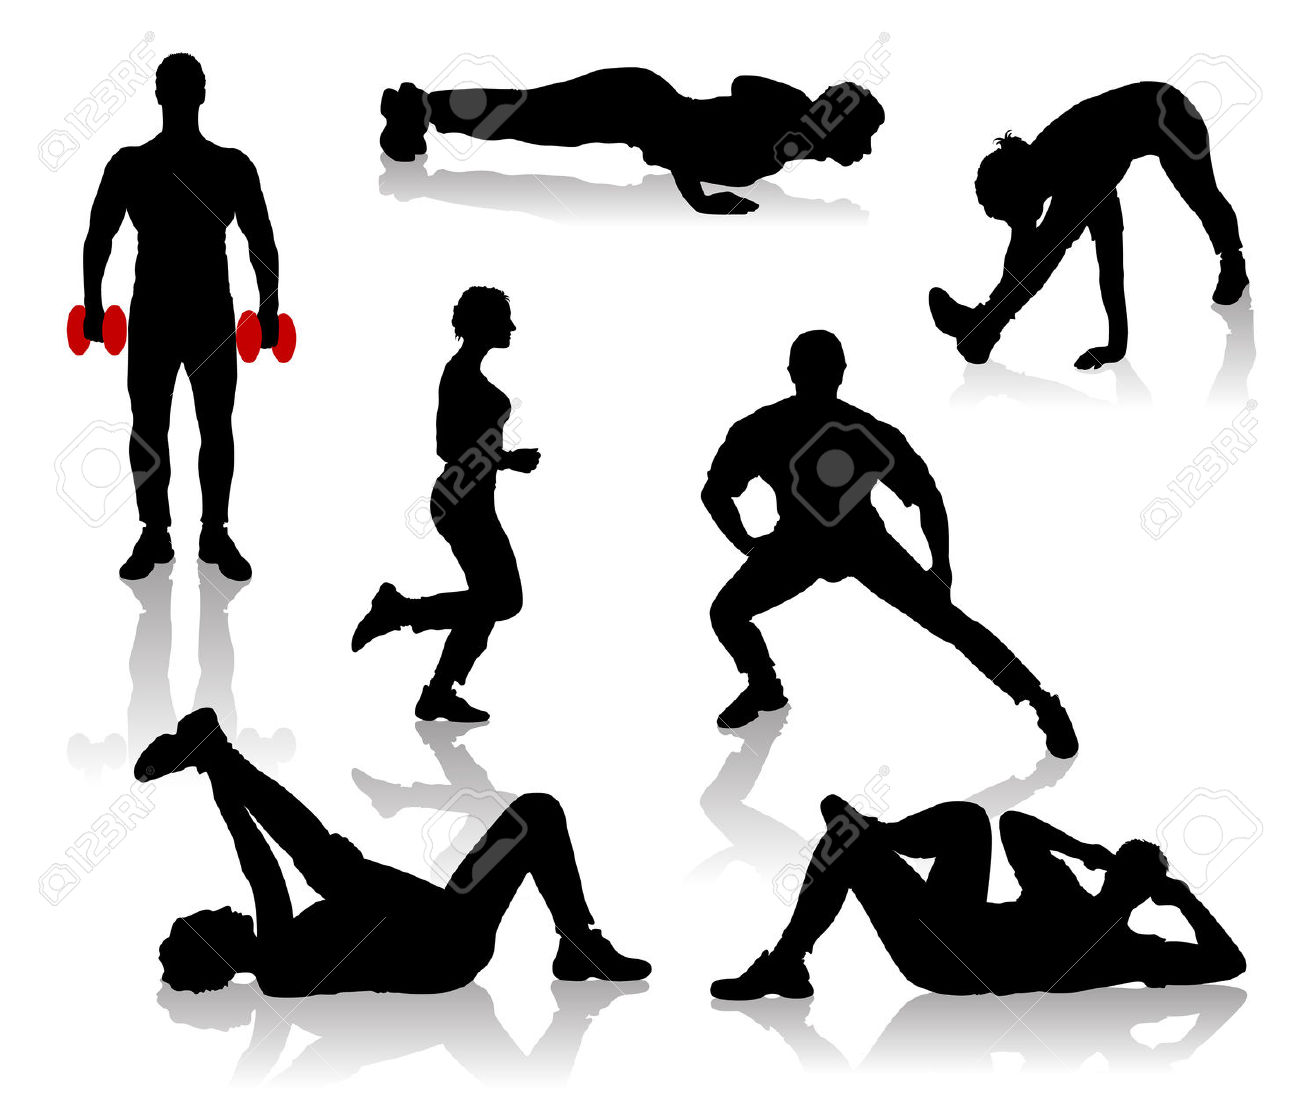 Silhouettes Of Exercises People Royalty Free Cliparts, Vectors.